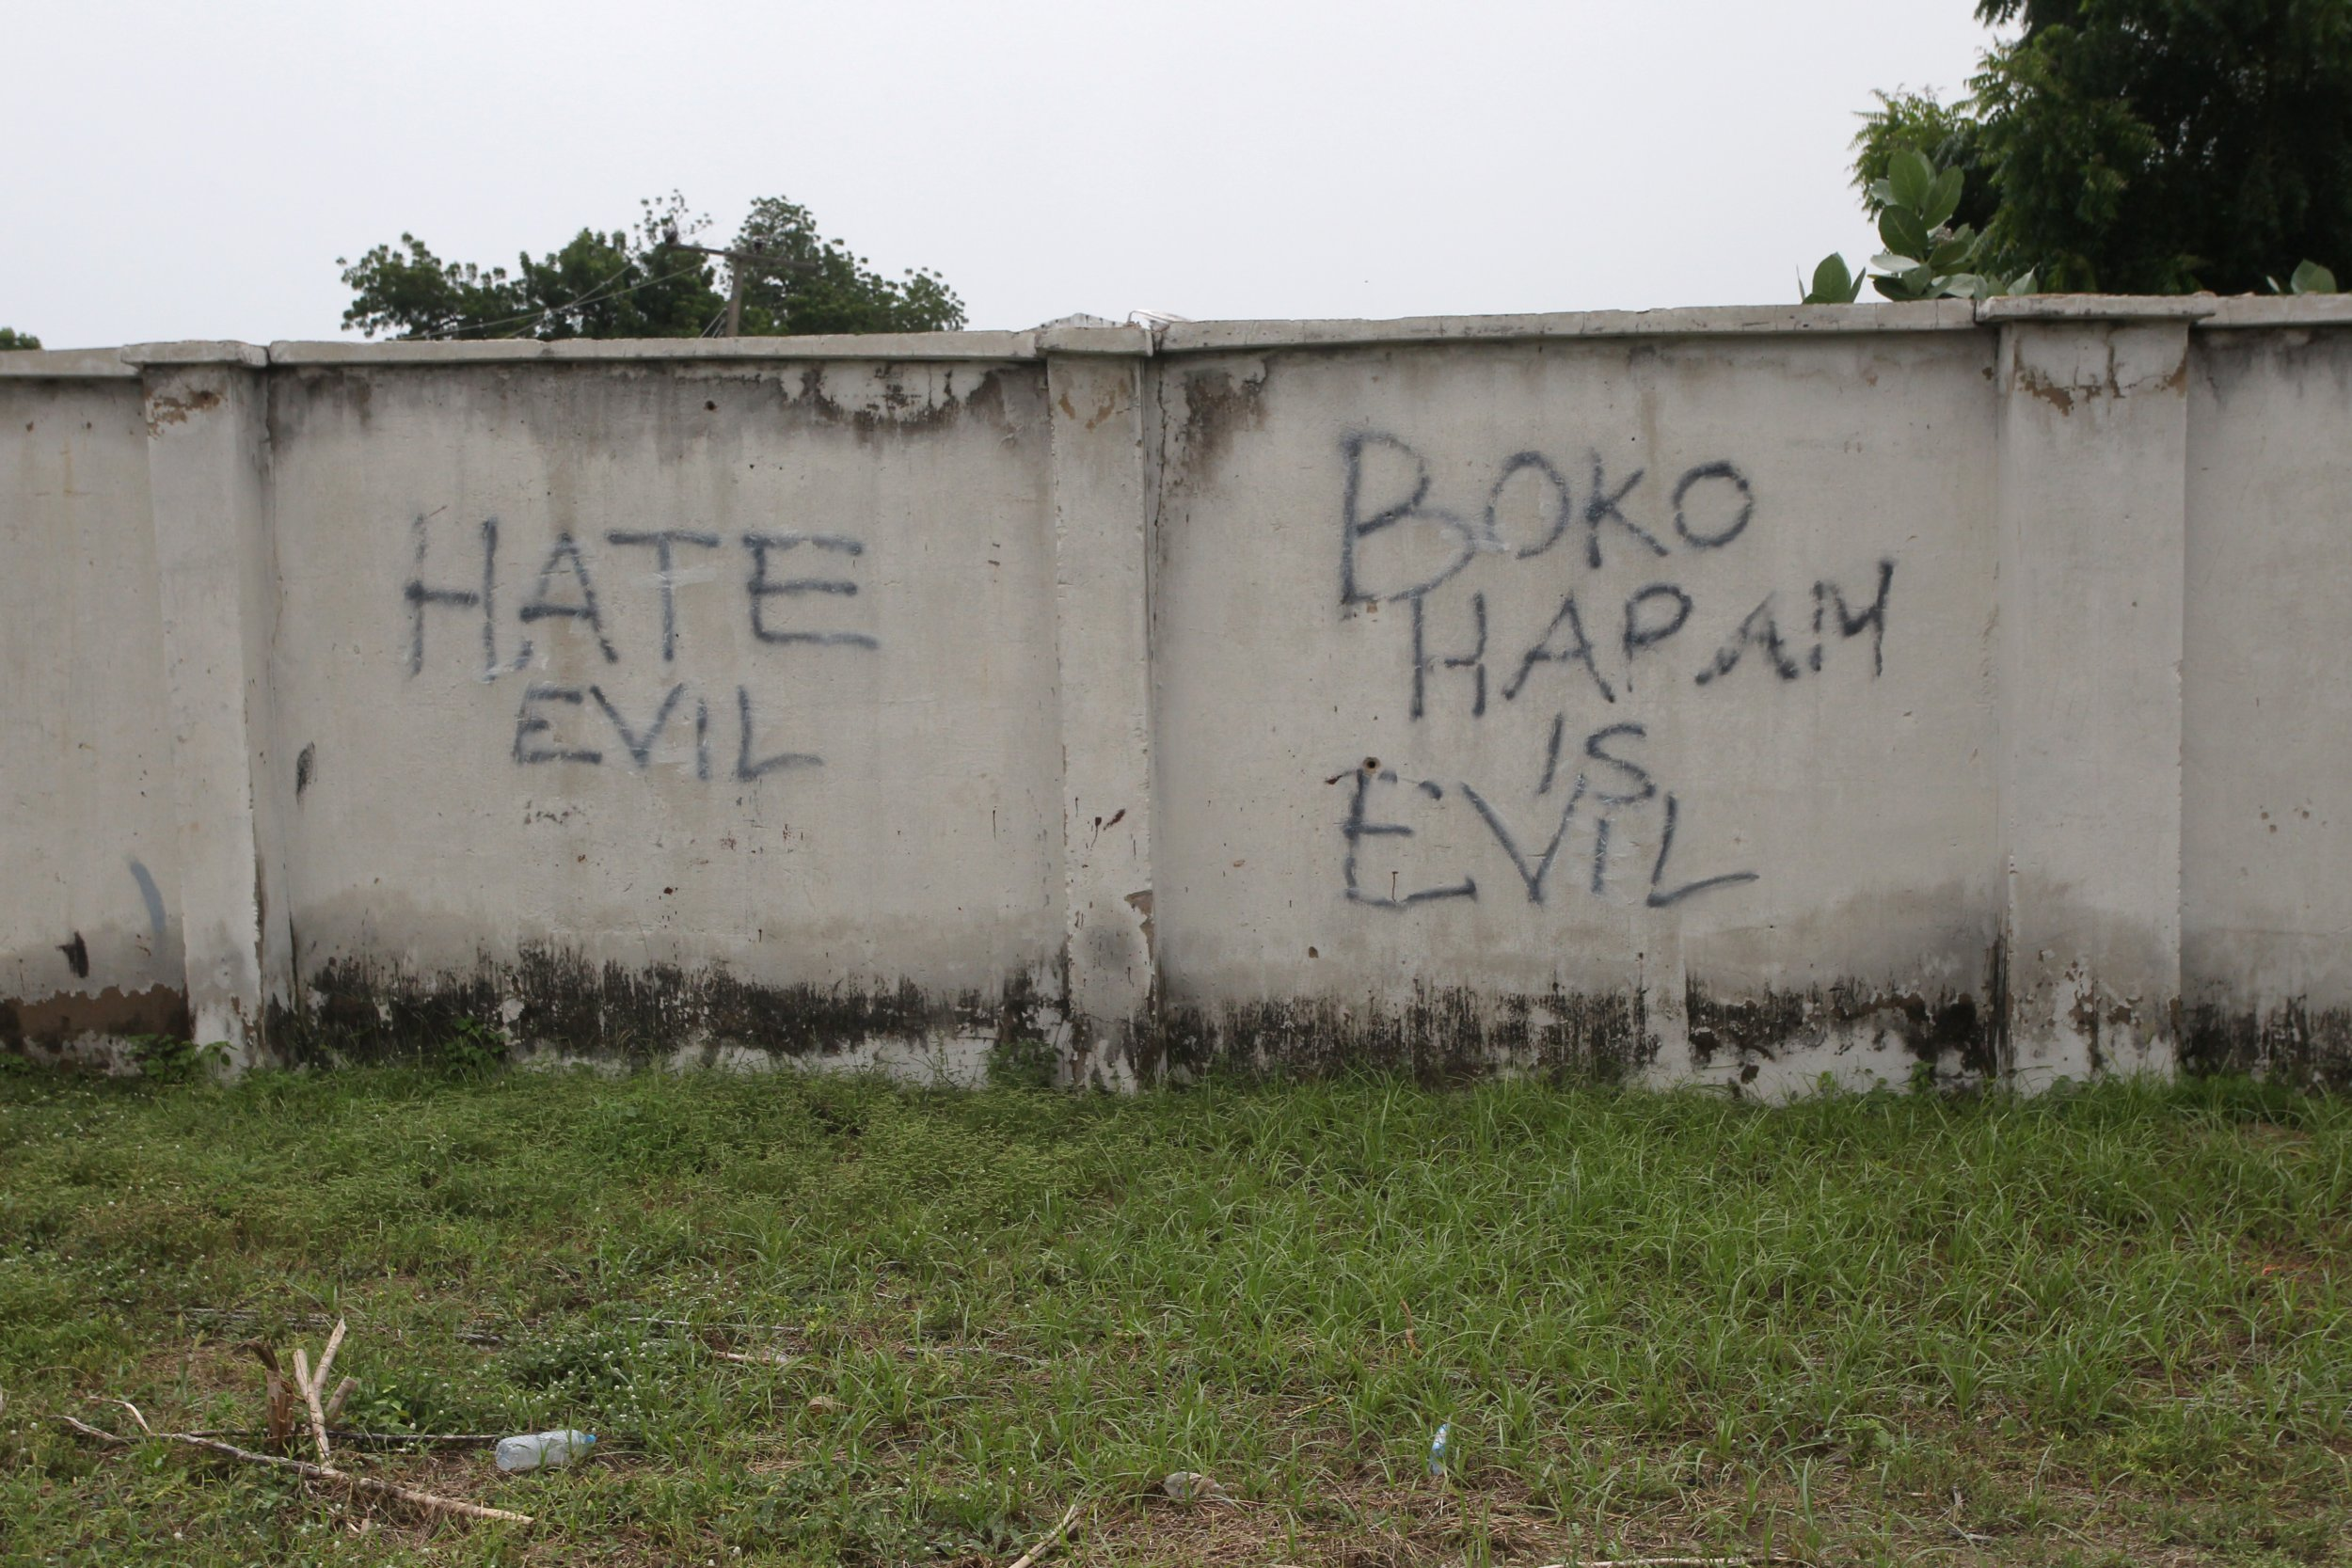 Anti-Boko Haram graffiti